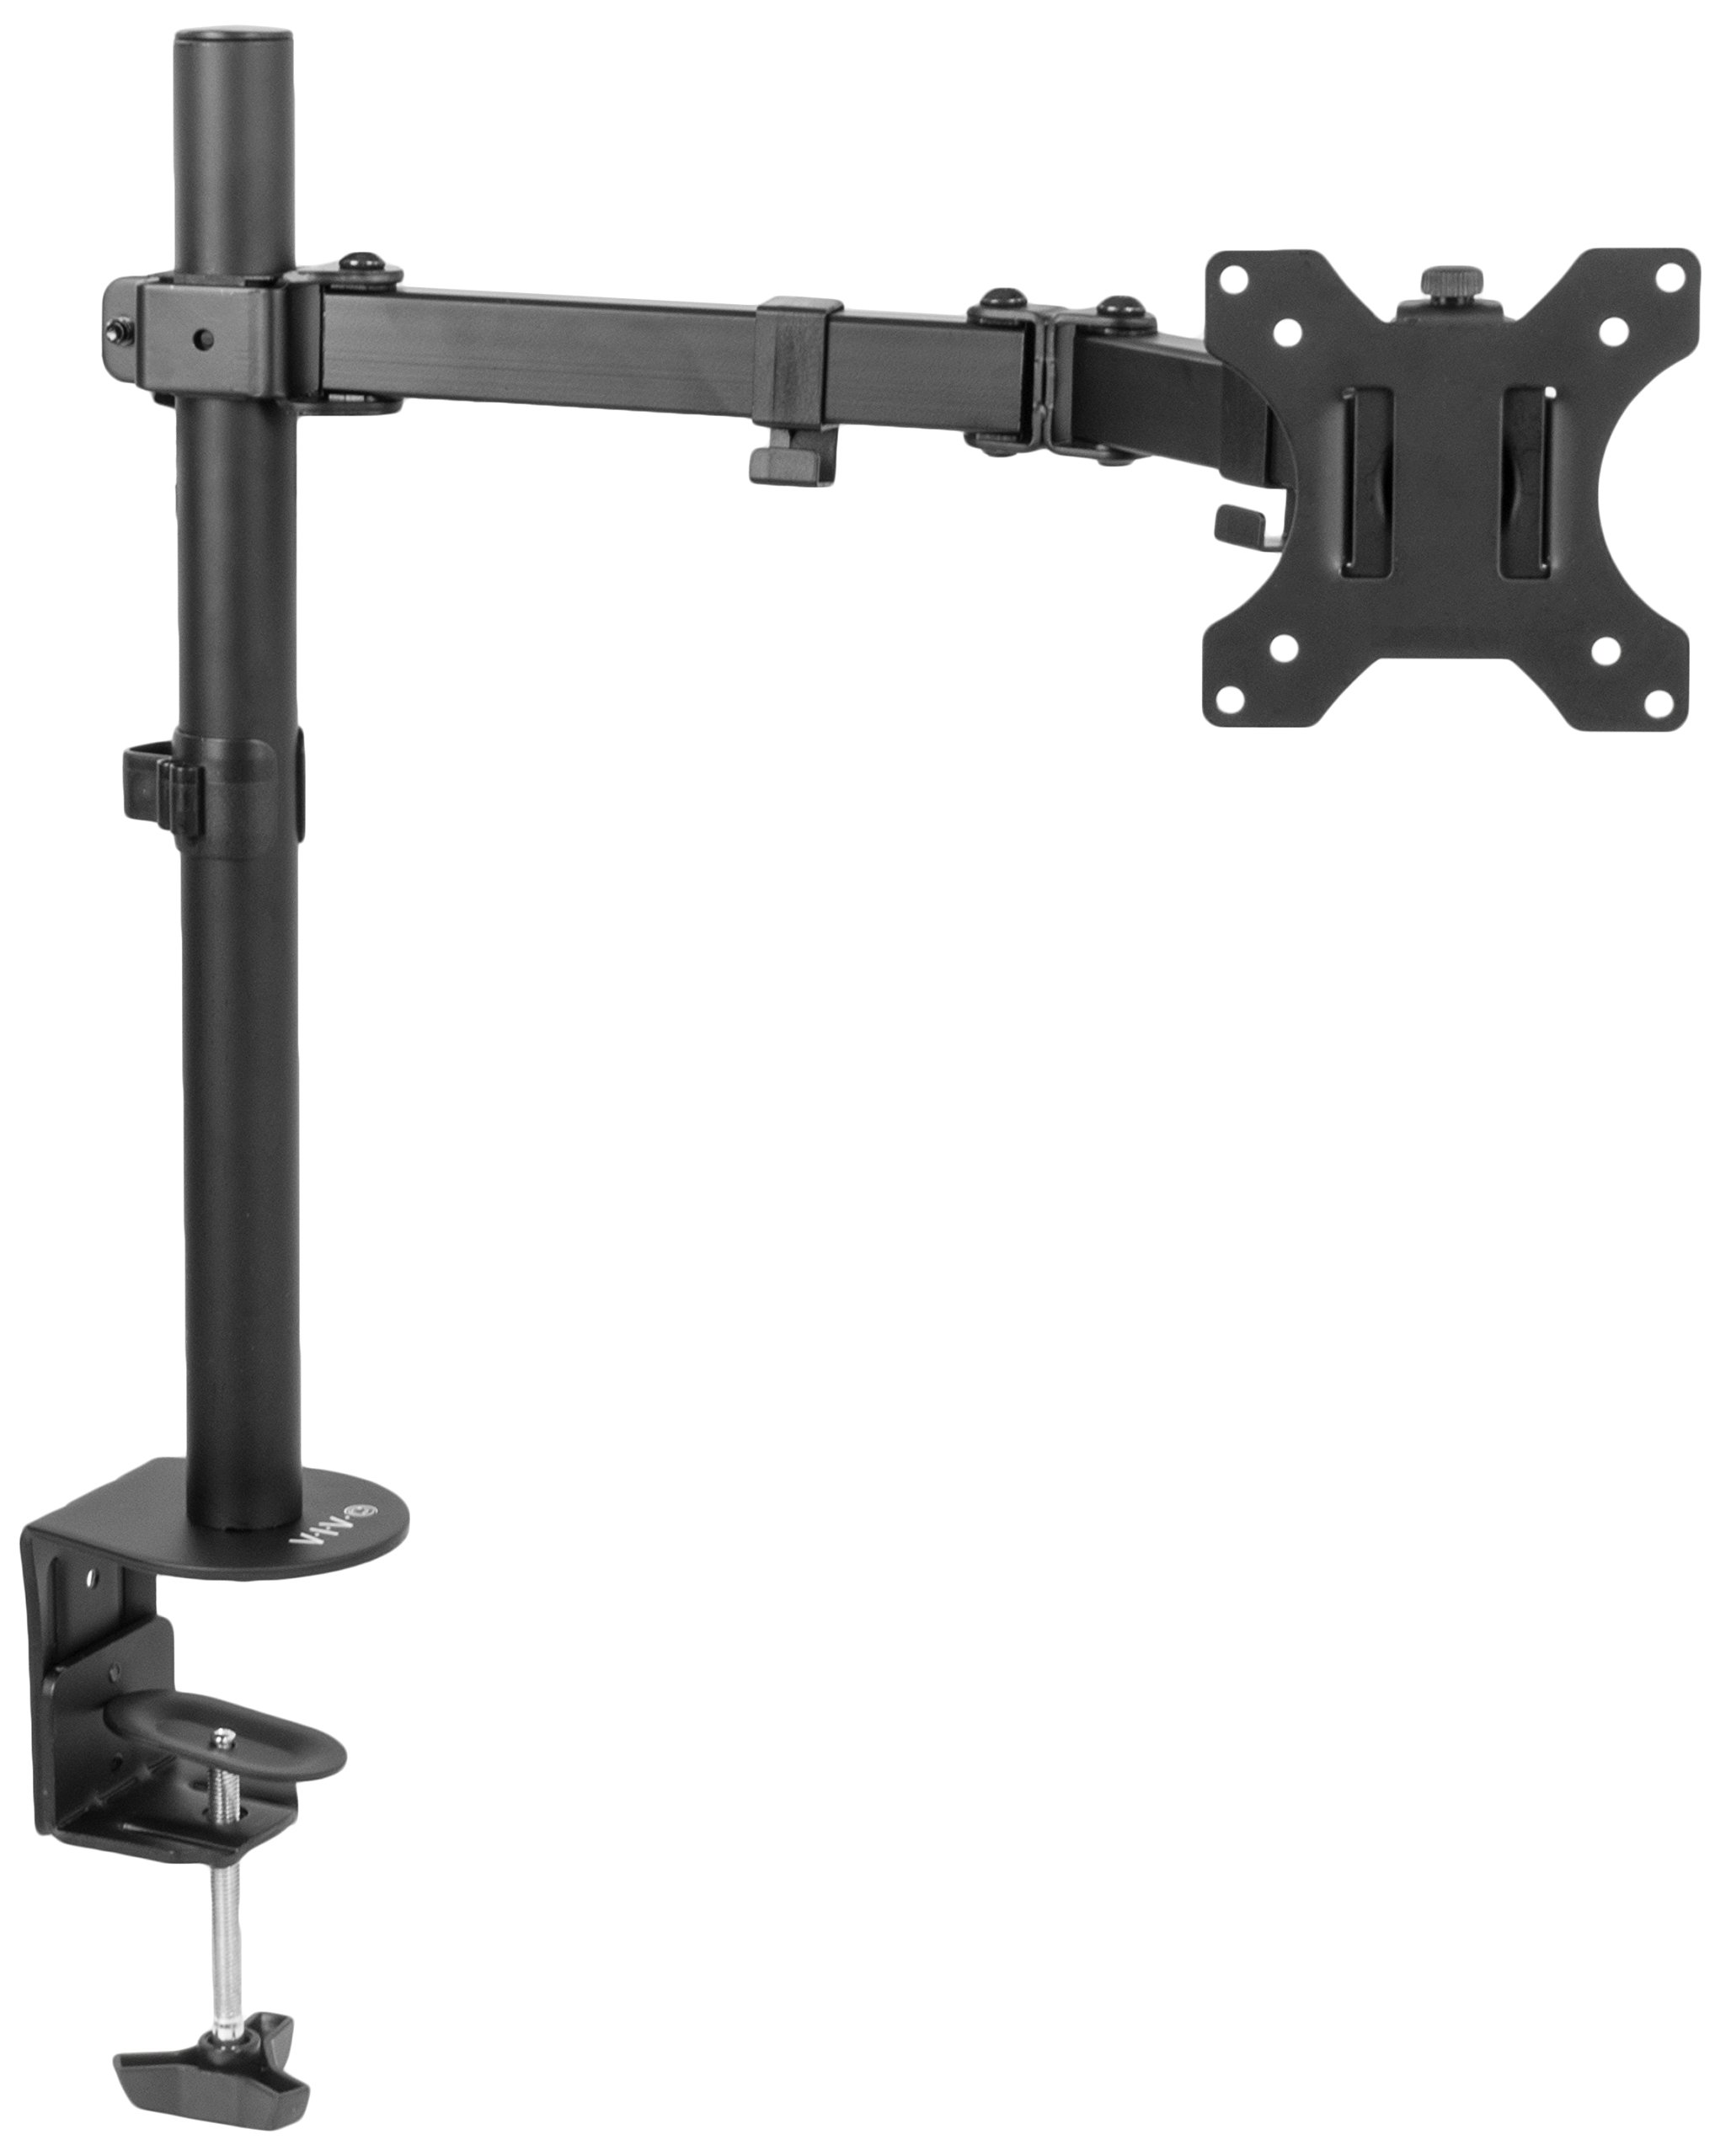 VIVO Full Motion Single VESA Computer Monitor Desk Mount Stand with Articulating Double Center Arm Joint | for 13'' to 32'' Screens (STAND-V101)